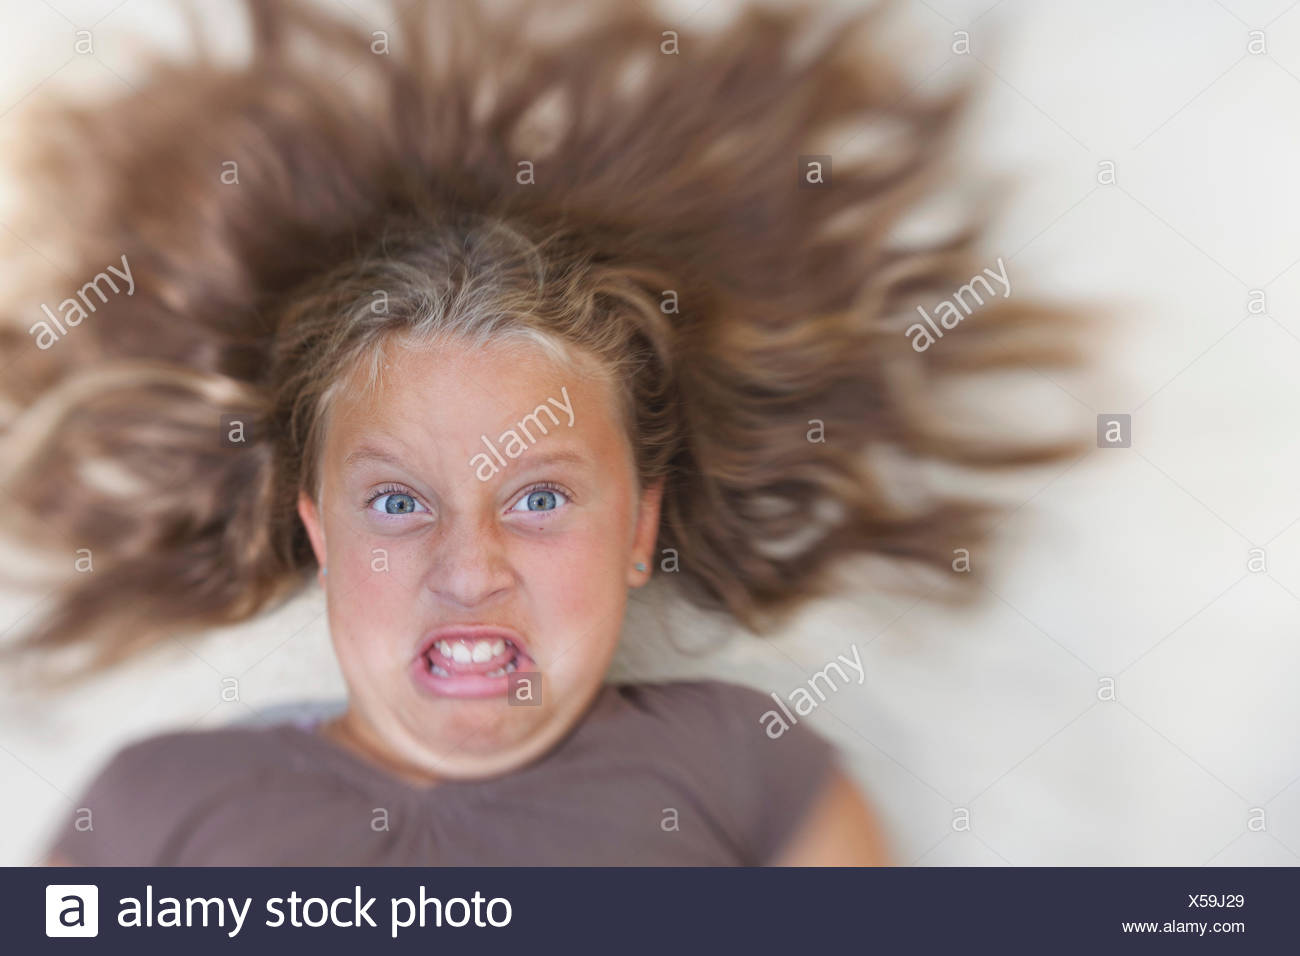 USA, Maryland, Howard County, Dayton, Girl (8-9) with tousled blond hair making a face Stock Photo